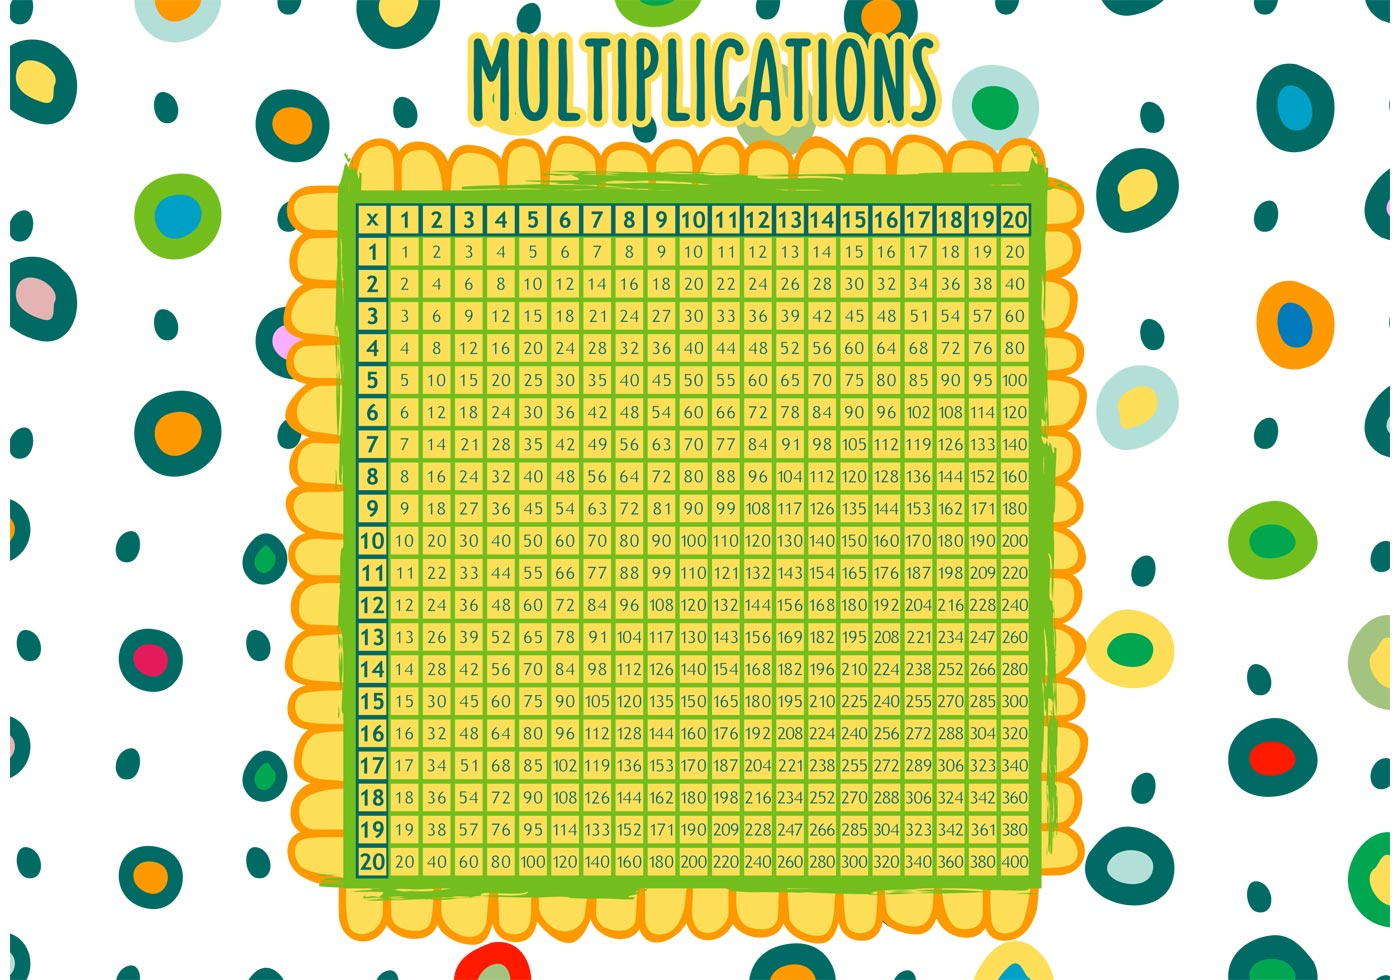 Empty multiplication table x y word layouts 25x25 multiplication table choice image periodic table images hand drawn multiplication math table vector 25x25 multiplication gamestrikefo Image collections